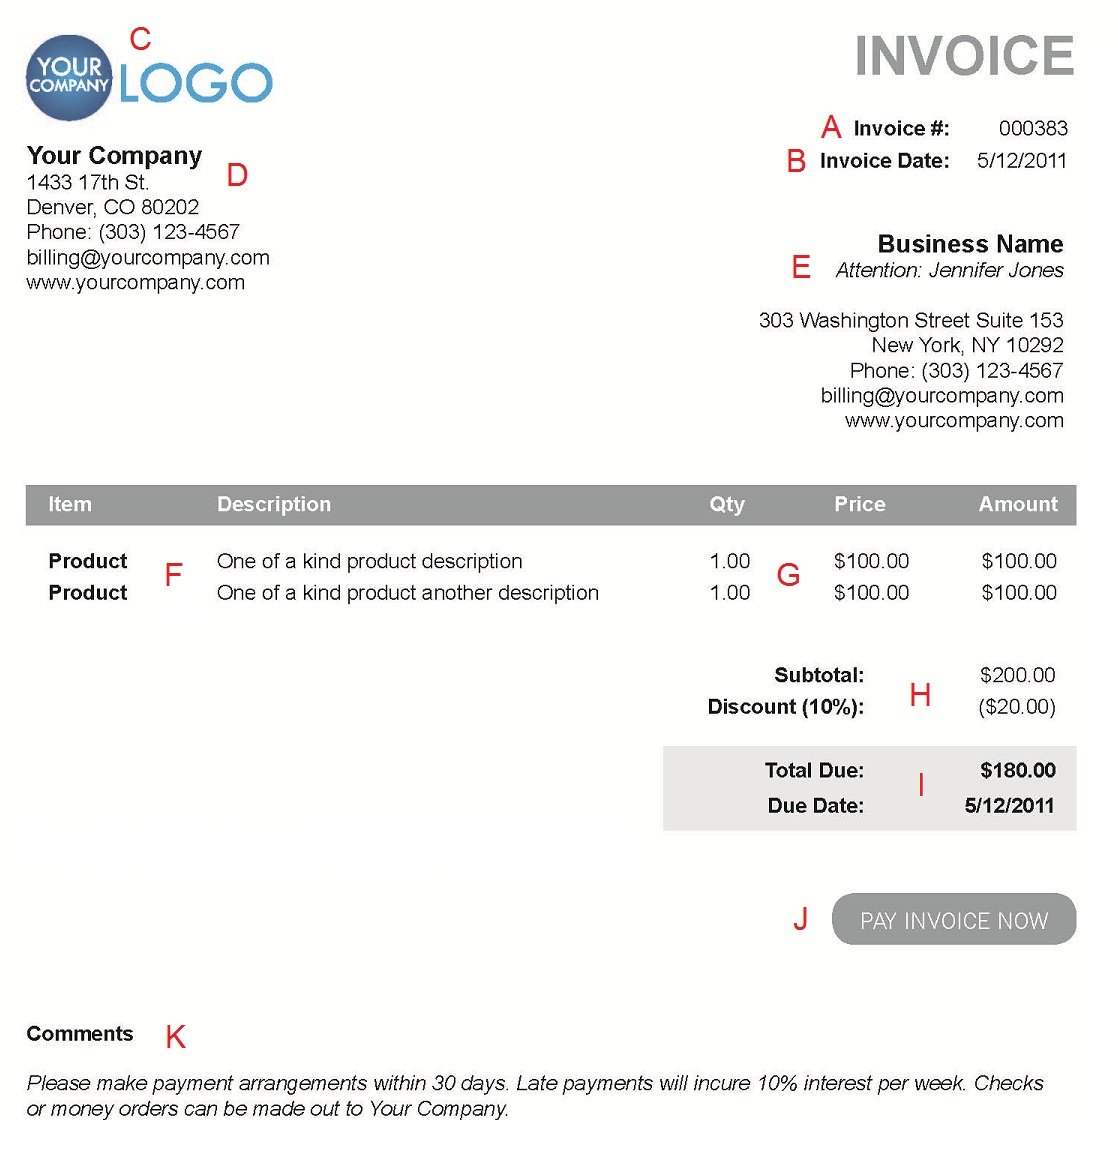 Coachoutletonlineplusus  Gorgeous The  Different Sections Of An Electronic Payment Invoice With Marvelous A  With Astounding Best Invoice Program Also Electronic Invoice Software In Addition Aging Invoice And Carbon Copy Invoice As Well As Free Proforma Invoice Template Additionally Sending An Invoice Via Email From Paysimplecom With Coachoutletonlineplusus  Marvelous The  Different Sections Of An Electronic Payment Invoice With Astounding A  And Gorgeous Best Invoice Program Also Electronic Invoice Software In Addition Aging Invoice From Paysimplecom